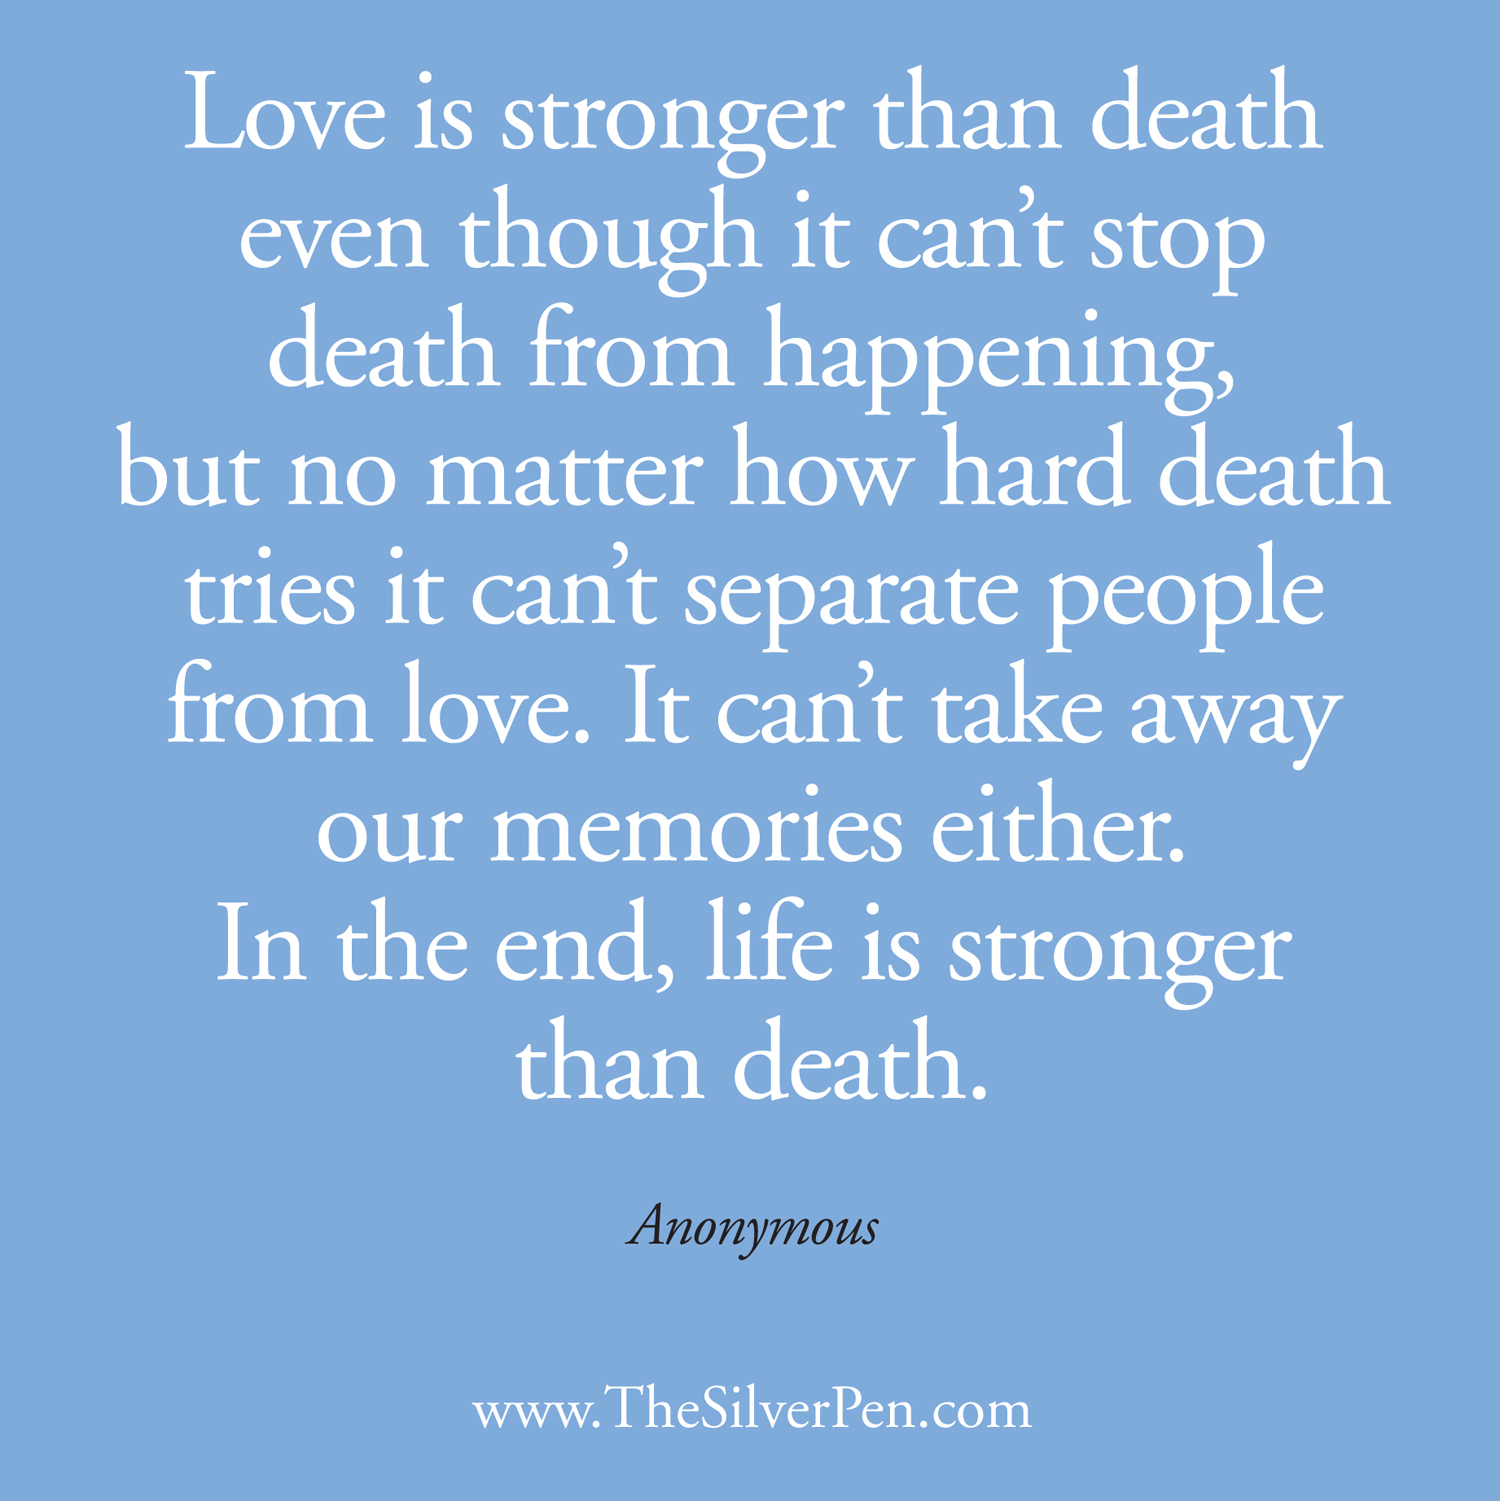 The Death Cure Quotes Quotesgram: Cancer Death Poems And Quotes. QuotesGram